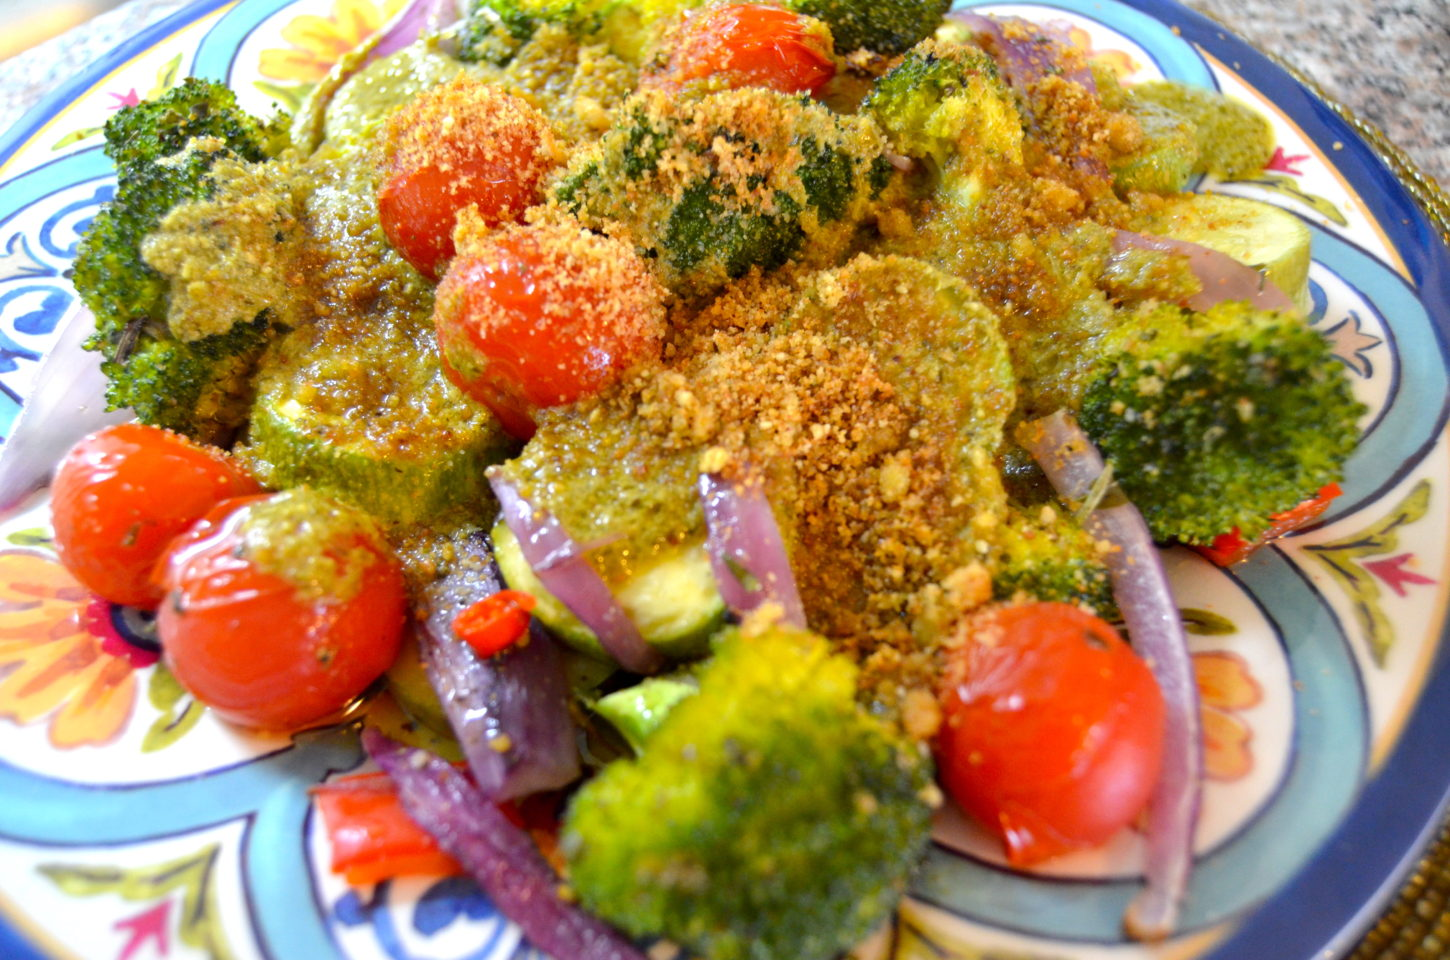 lifestyle redesign  - 685f45 99373ea8933b4f78a358209360f58654mv2 d 4928 3264 s 4 2 - Roasted Vegetables with Pan-fried Garlic Breadcrumbs